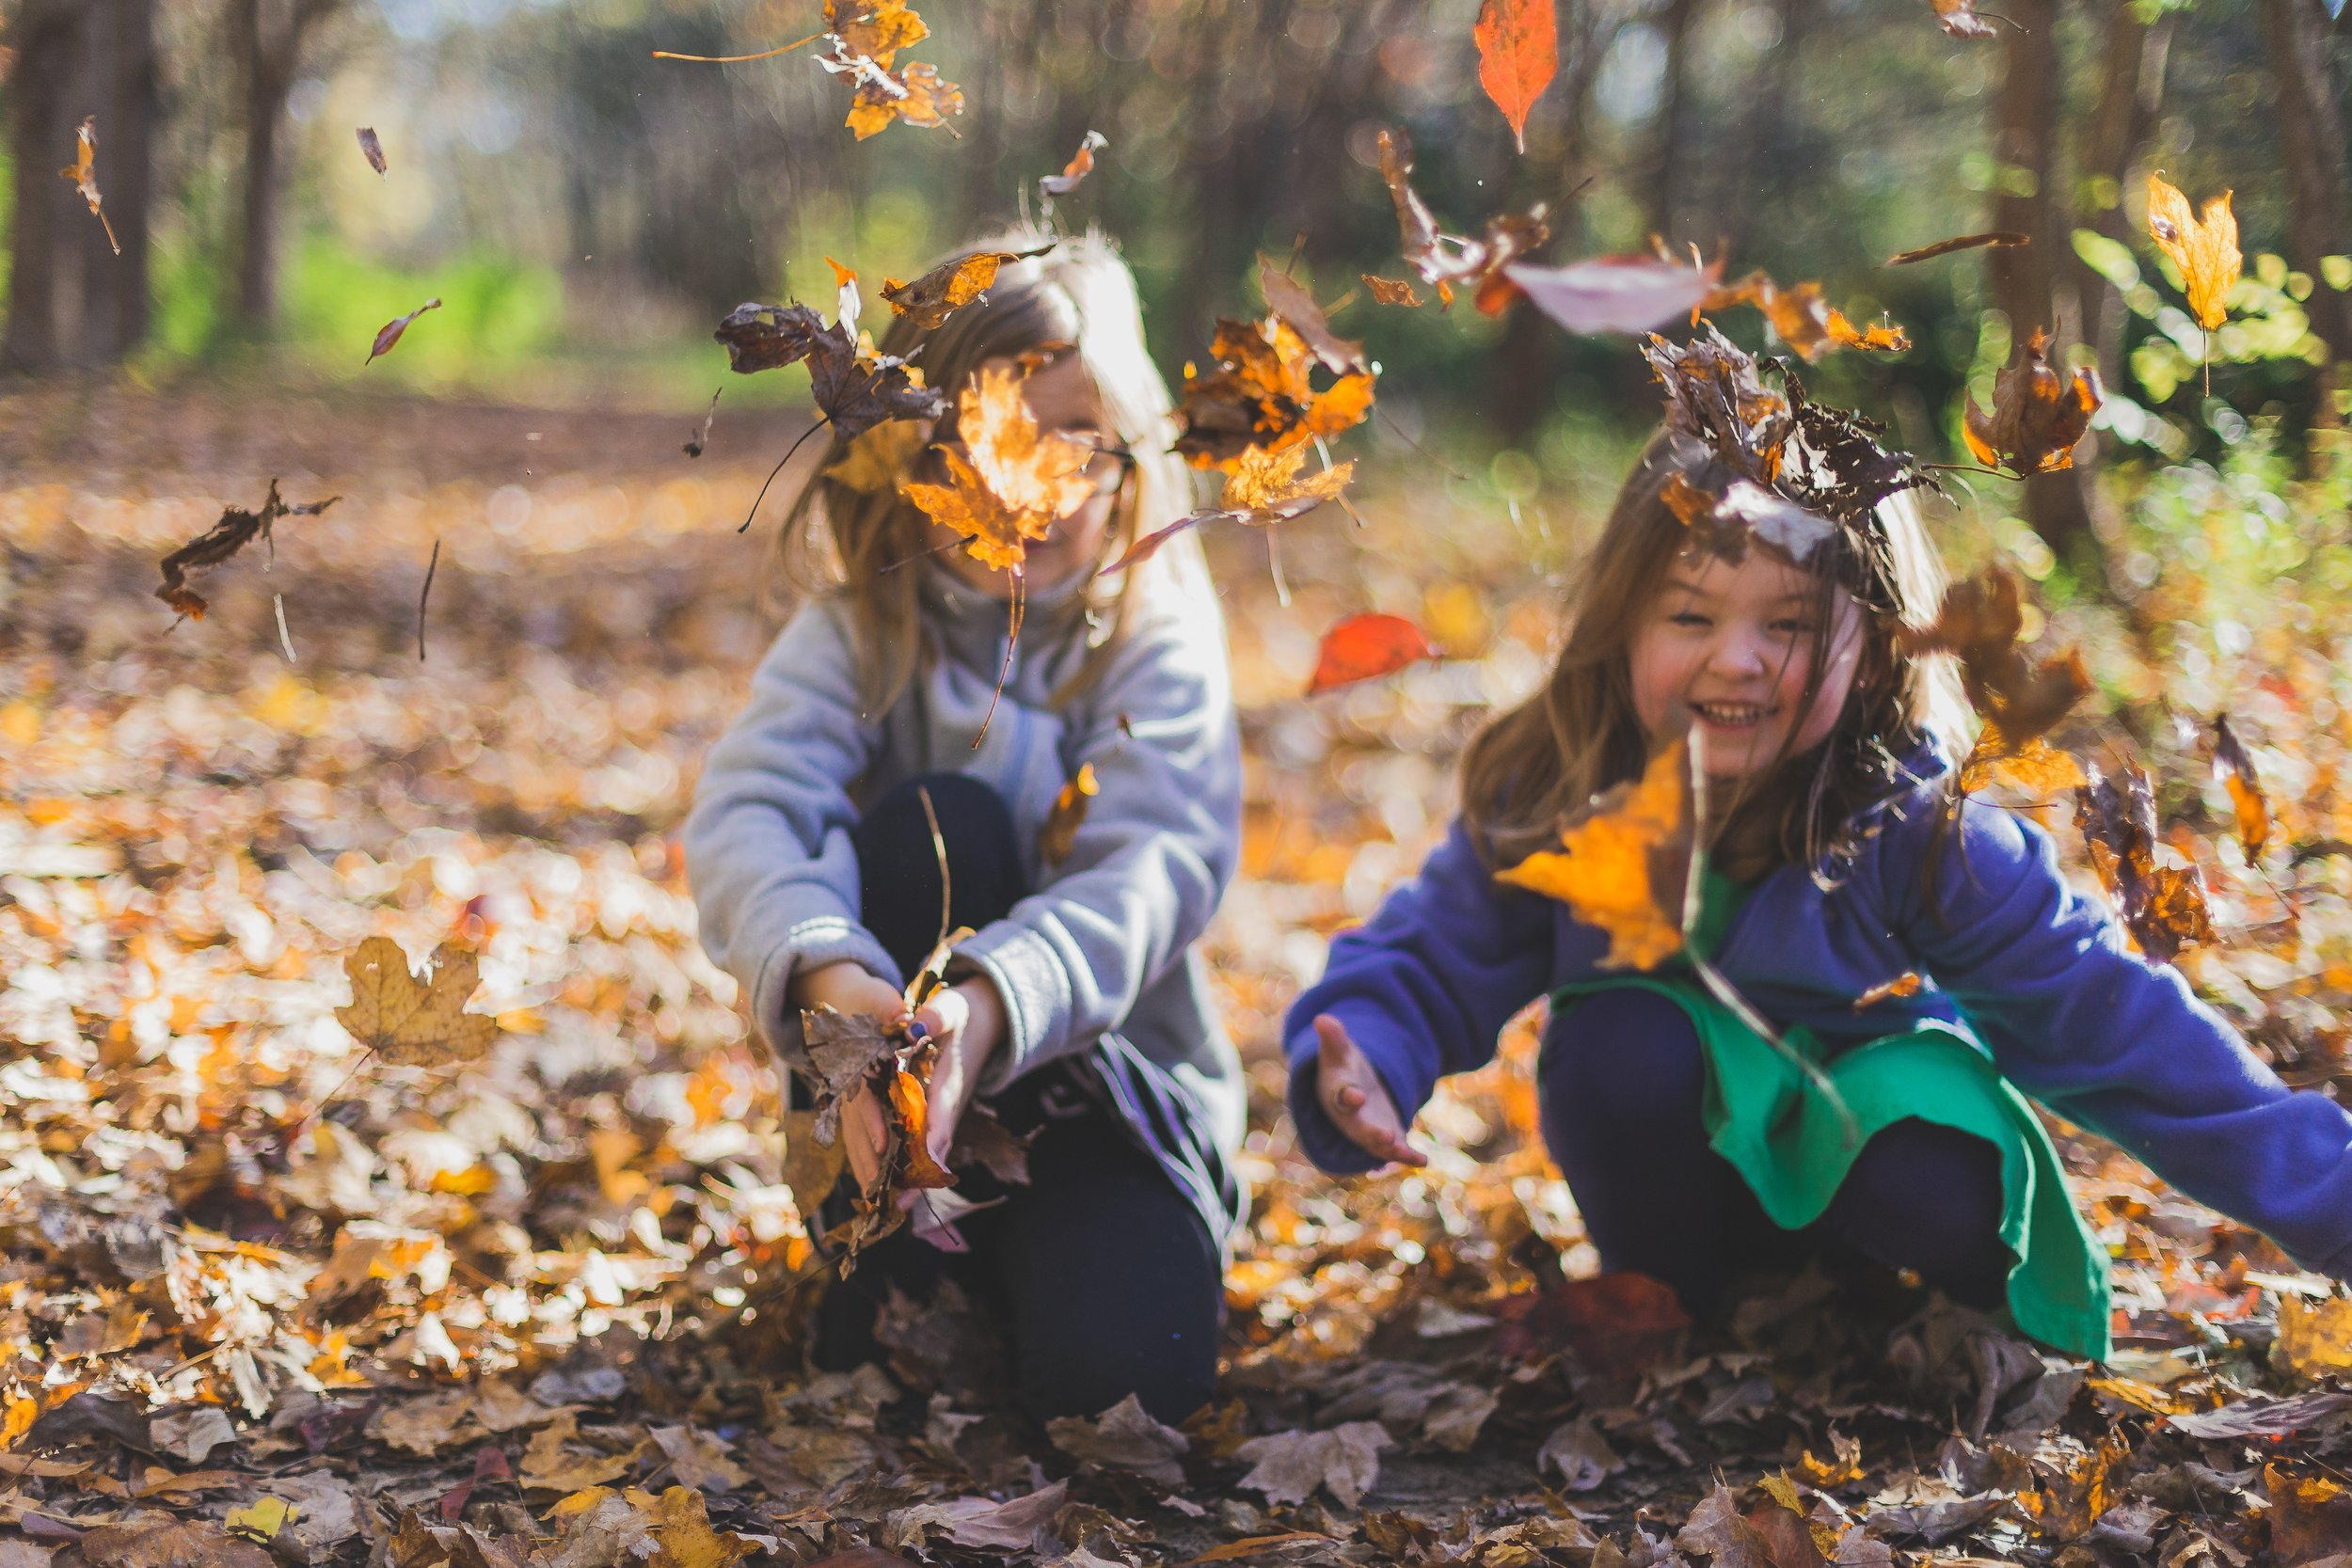 Children play outside in the leaves